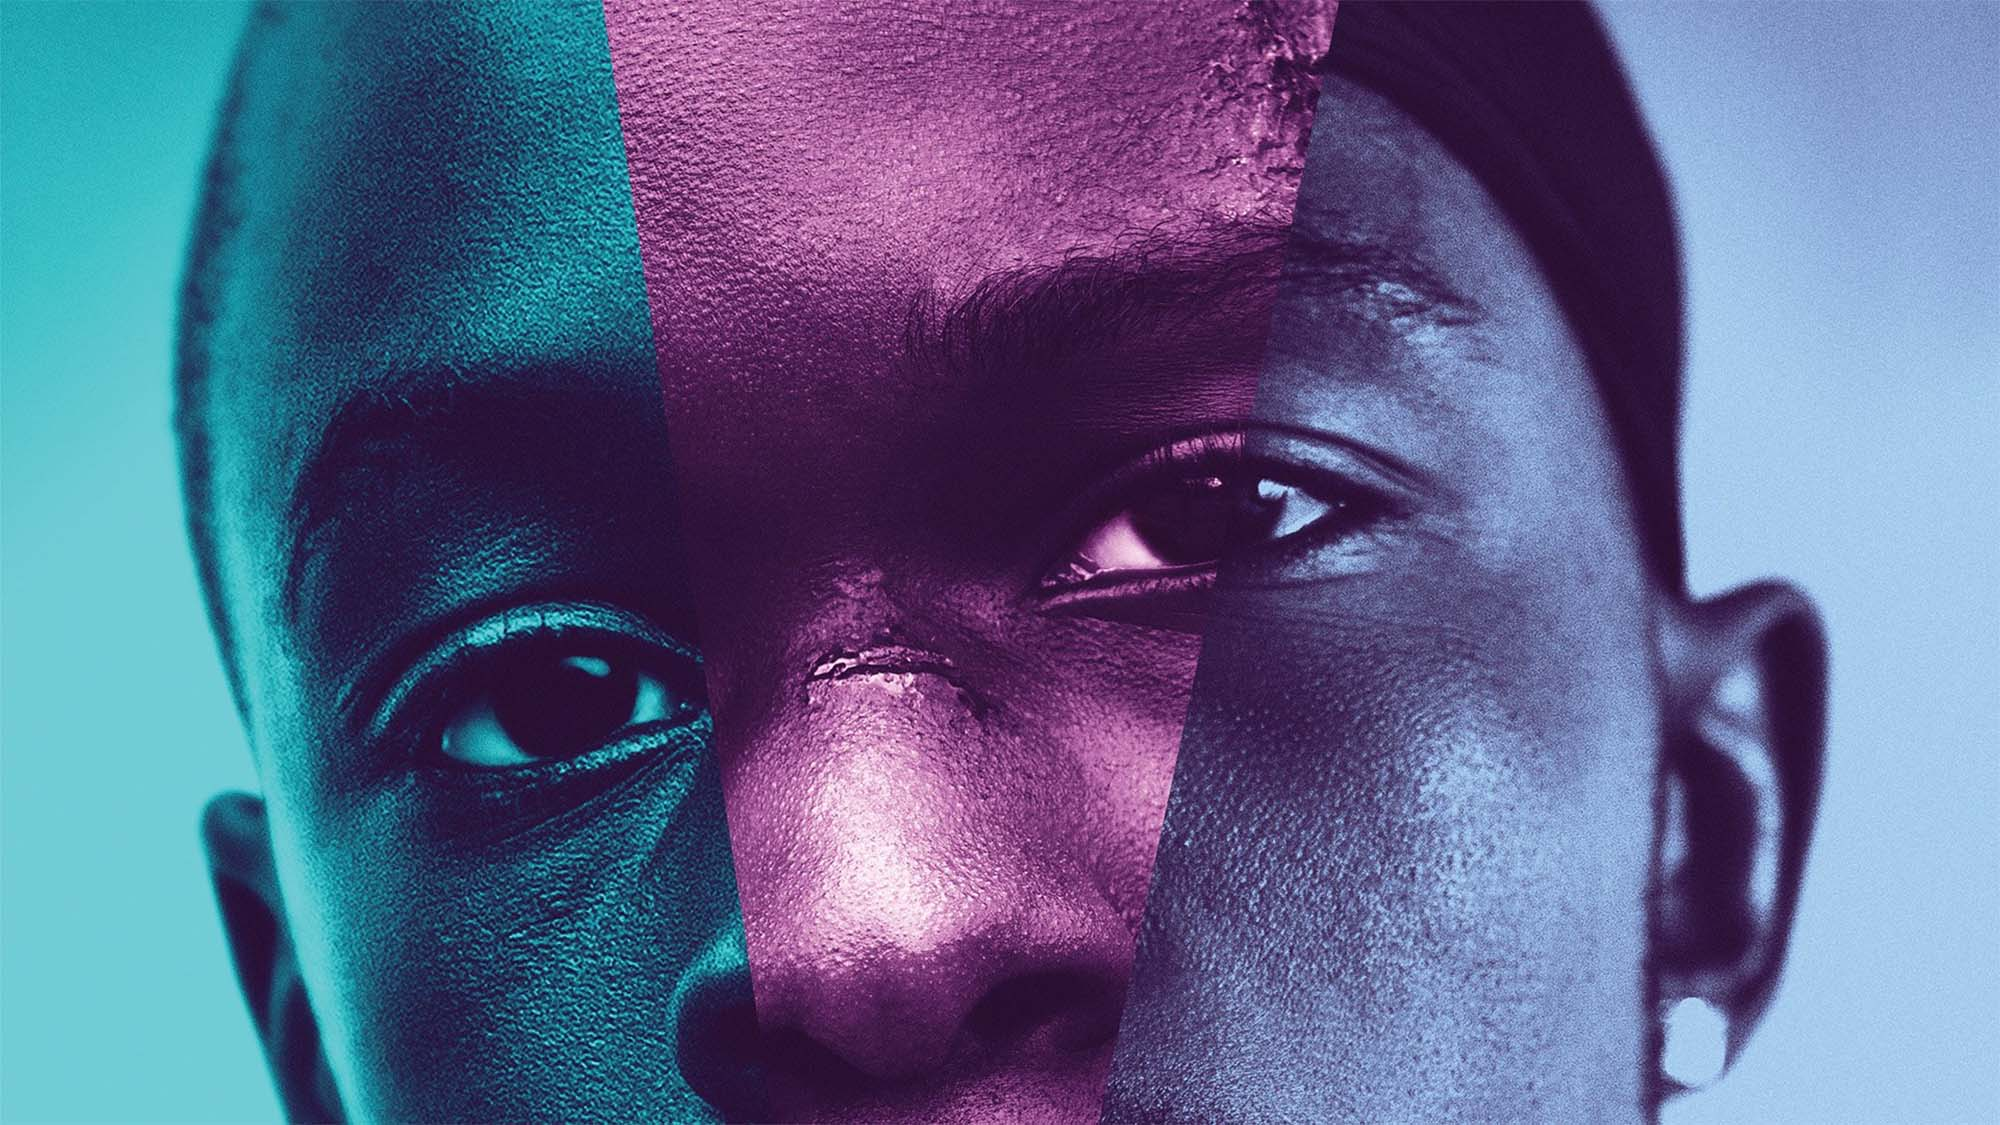 We turn our spotlight to some of the best LGBTQI film festivals, so we now look at the best advocacy groups for LGBTQI filmmakers to find funding.